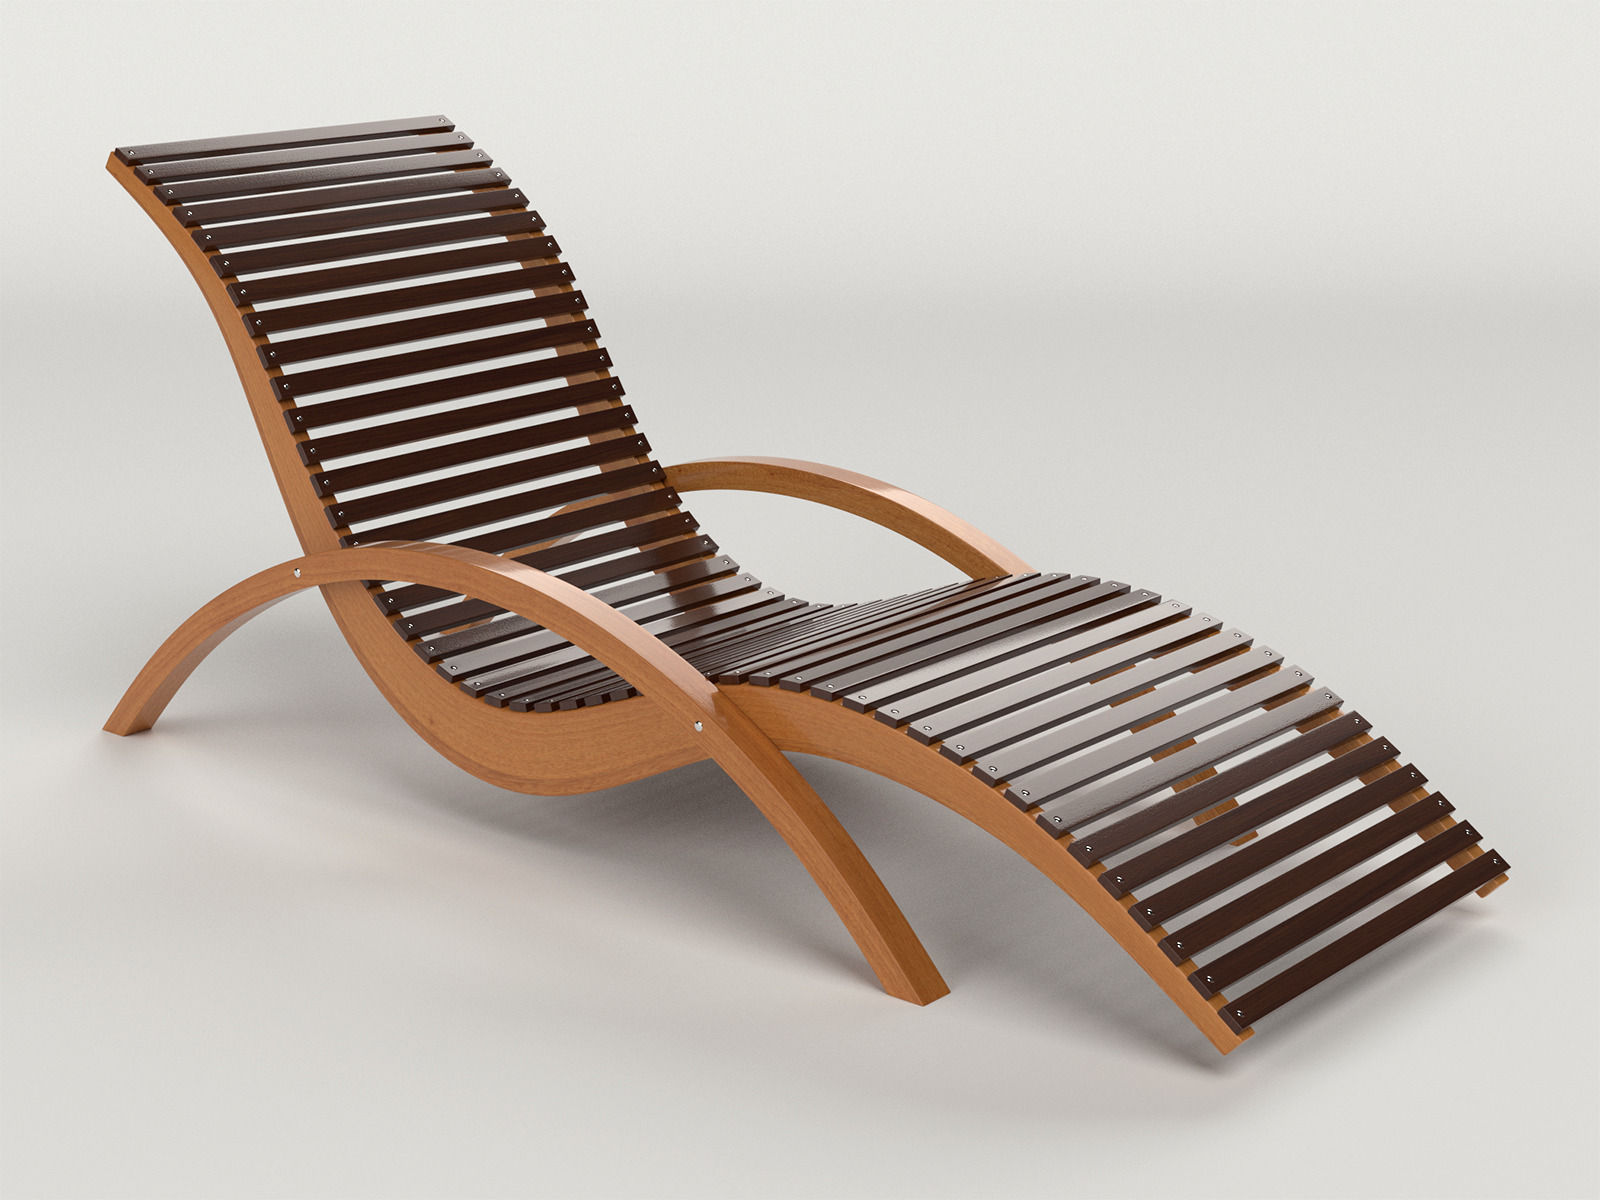 Lounge Chair Outdoor Wood Patio Deck 3D Model OBJ ...